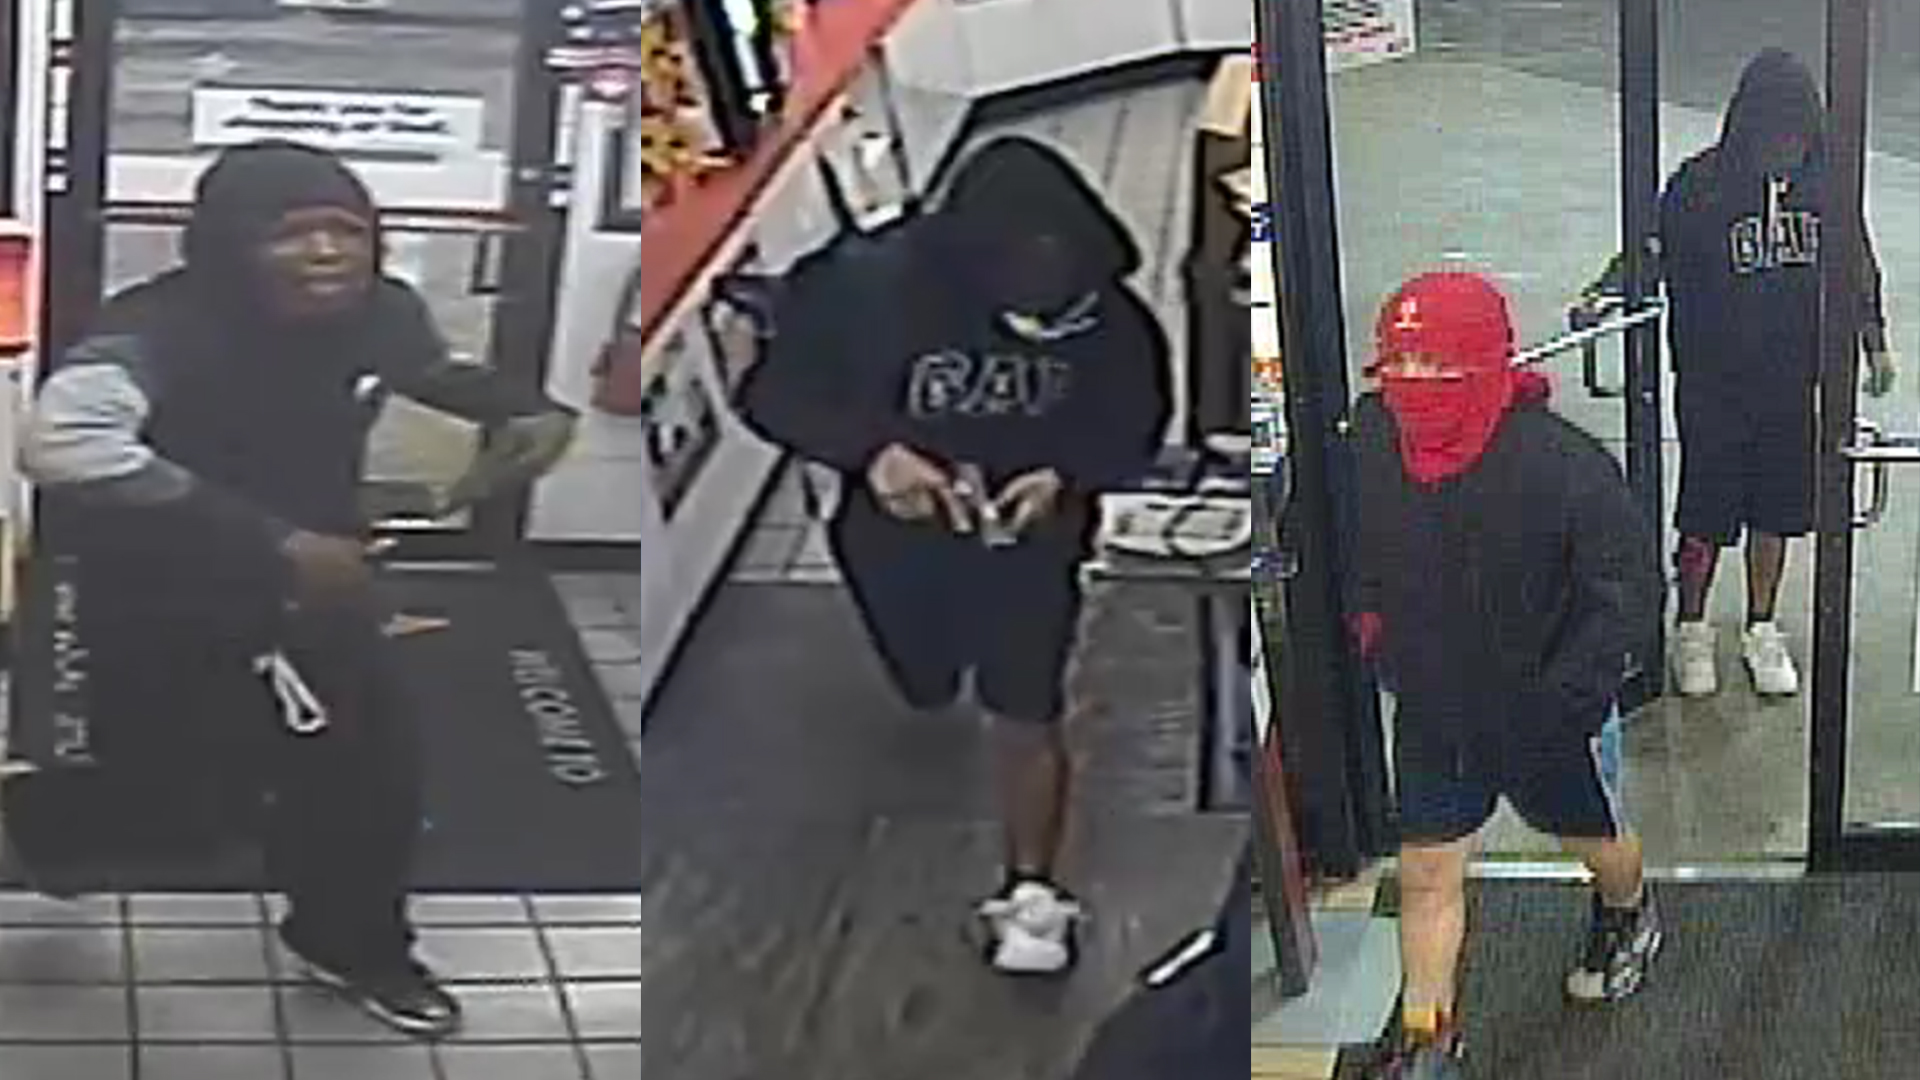 Suspects accused in South Congress convenience store robbery Oct. 18 (APD Photo)